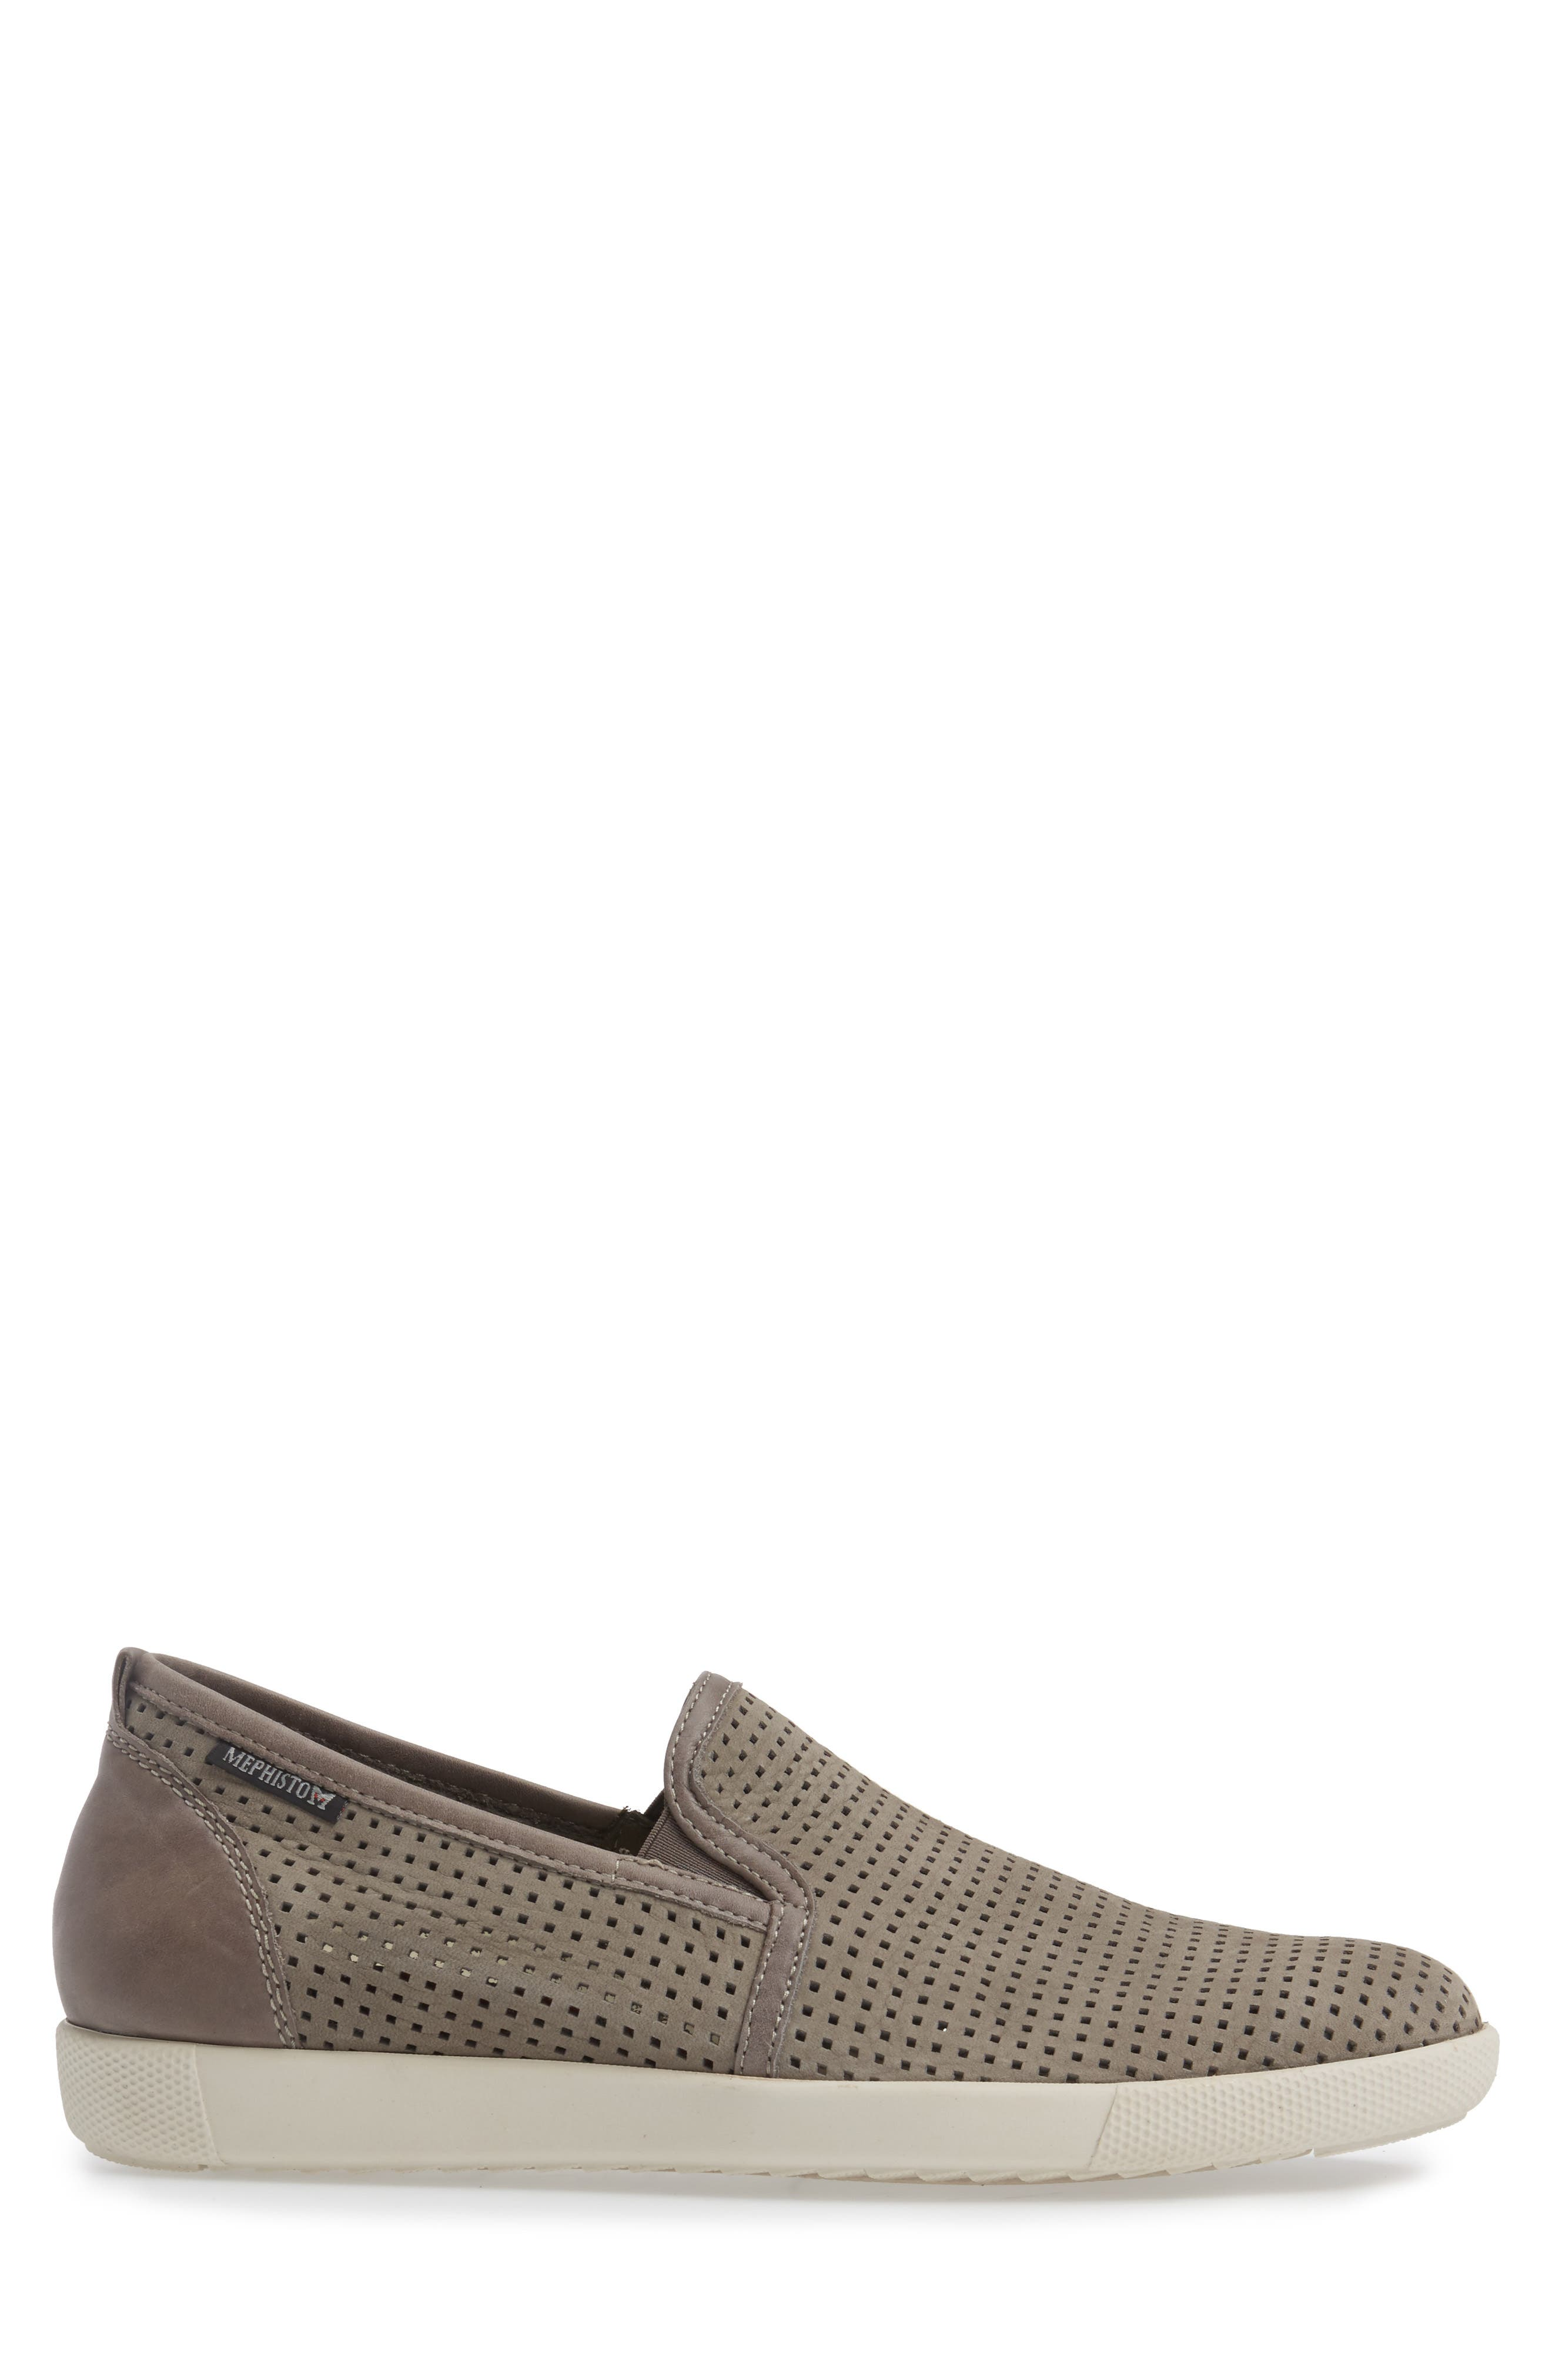 MEPHISTO, 'Ulrich' Perforated Leather Slip-On, Alternate thumbnail 3, color, LIGHT GREY SPORTBUCK